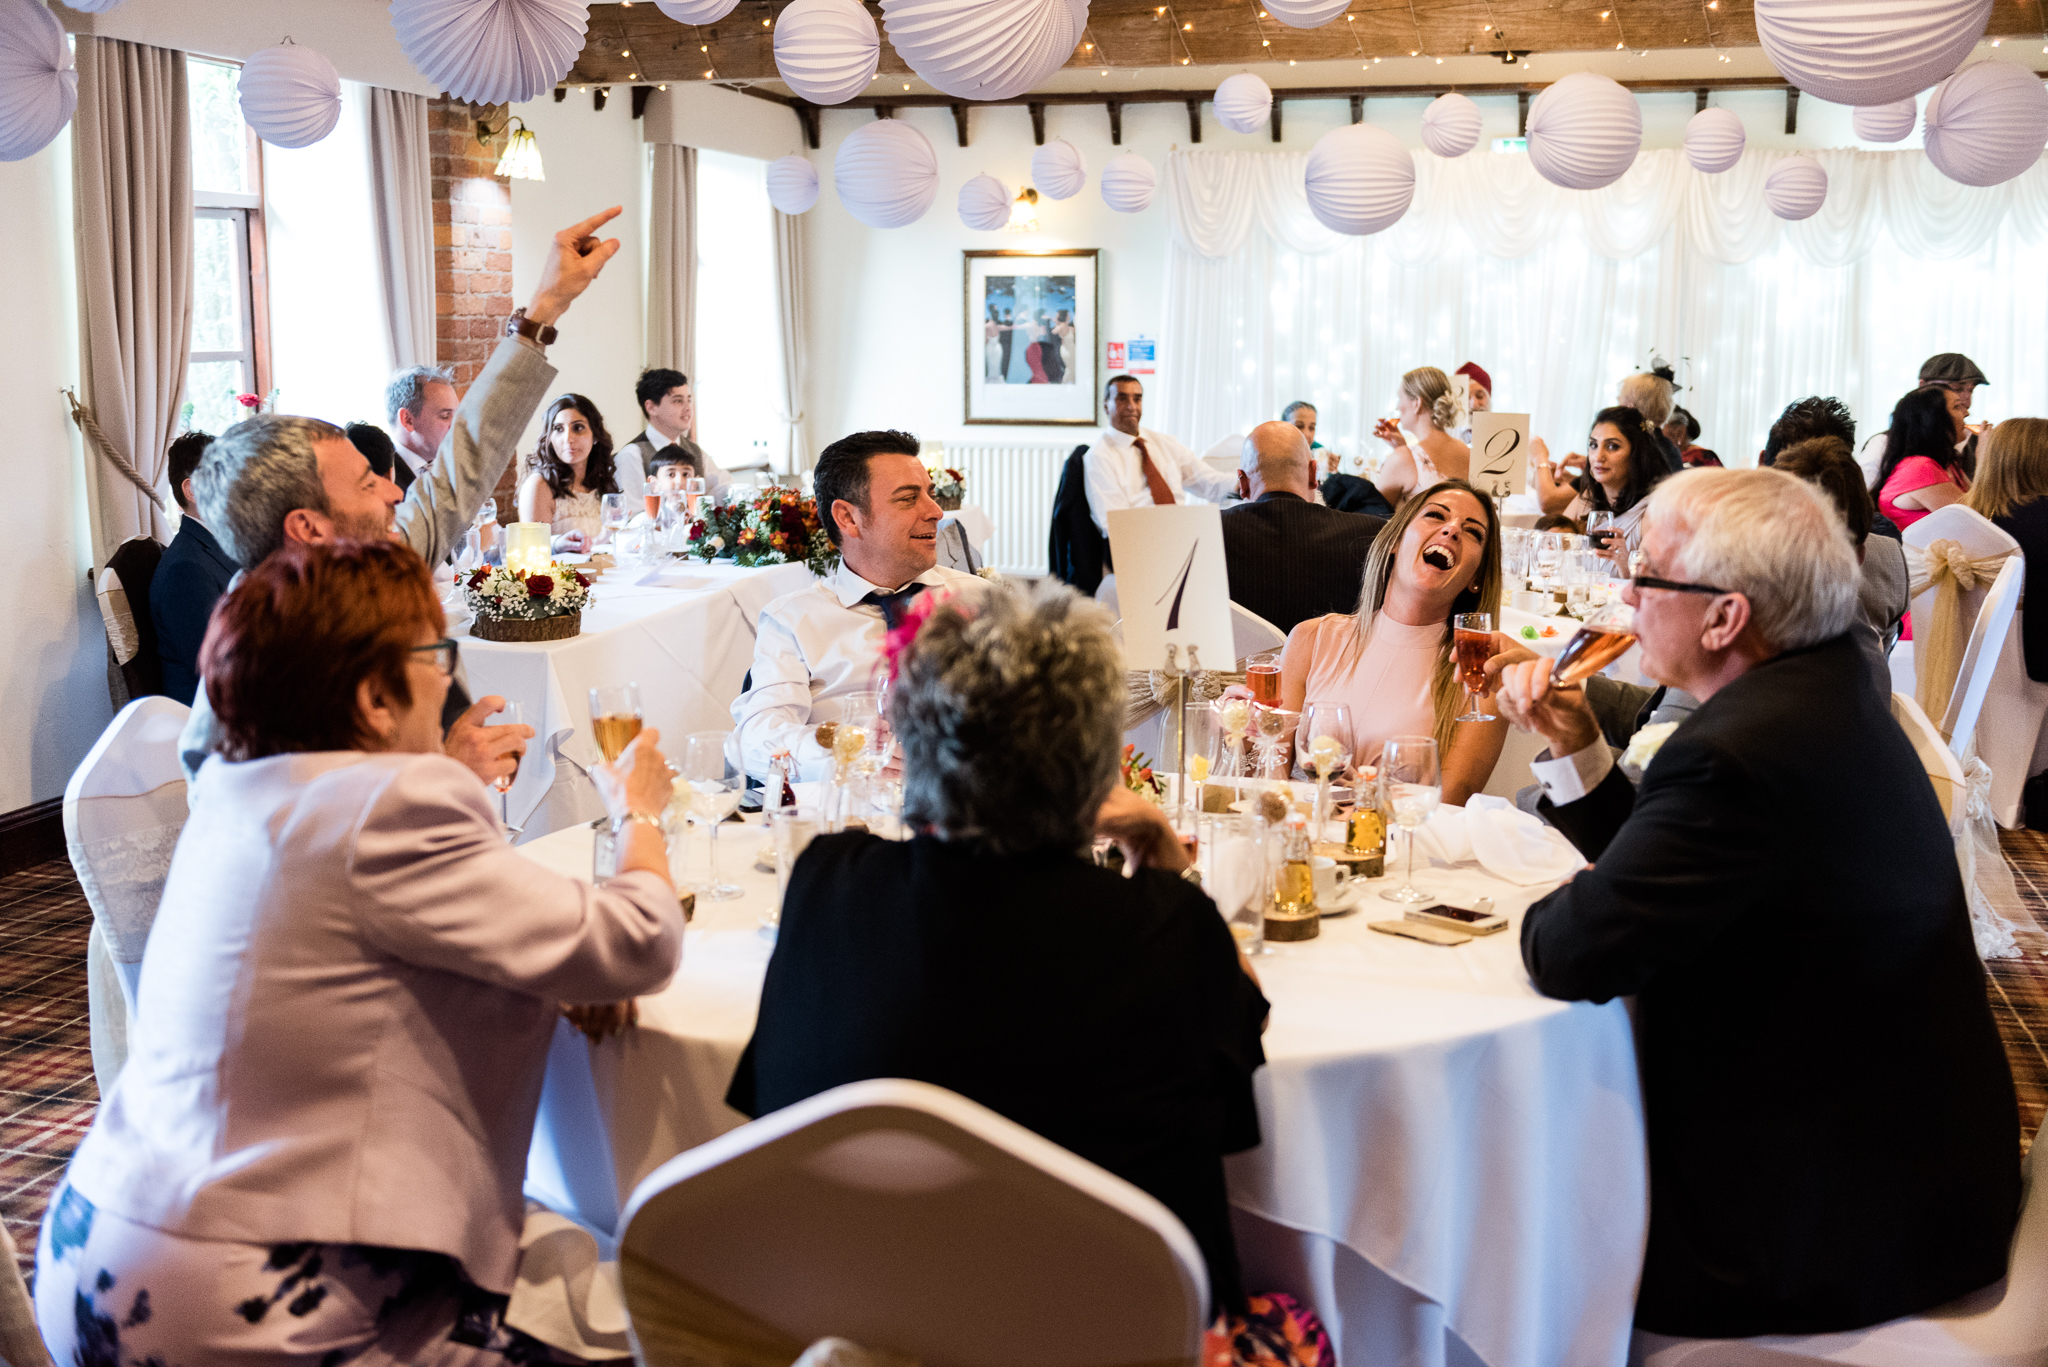 Staffordshire Wedding Photography at Slater's Country Inn, Baldwin's Gate, Relaxed Documentary Photography - Jenny Harper-47.jpg